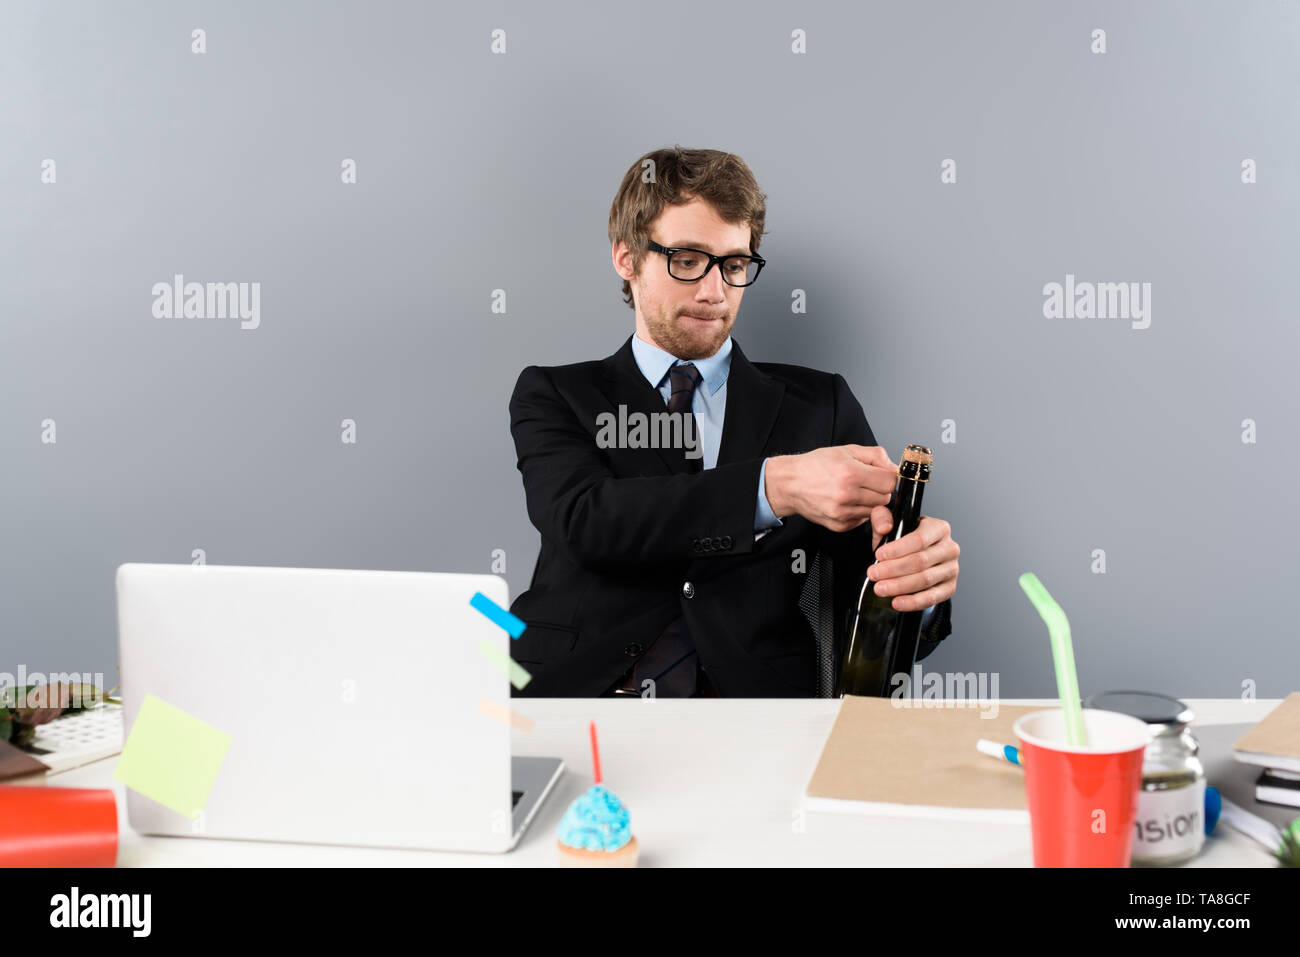 businessman sitting at workplace and opening bottle with champagne isolated on grey - Stock Image